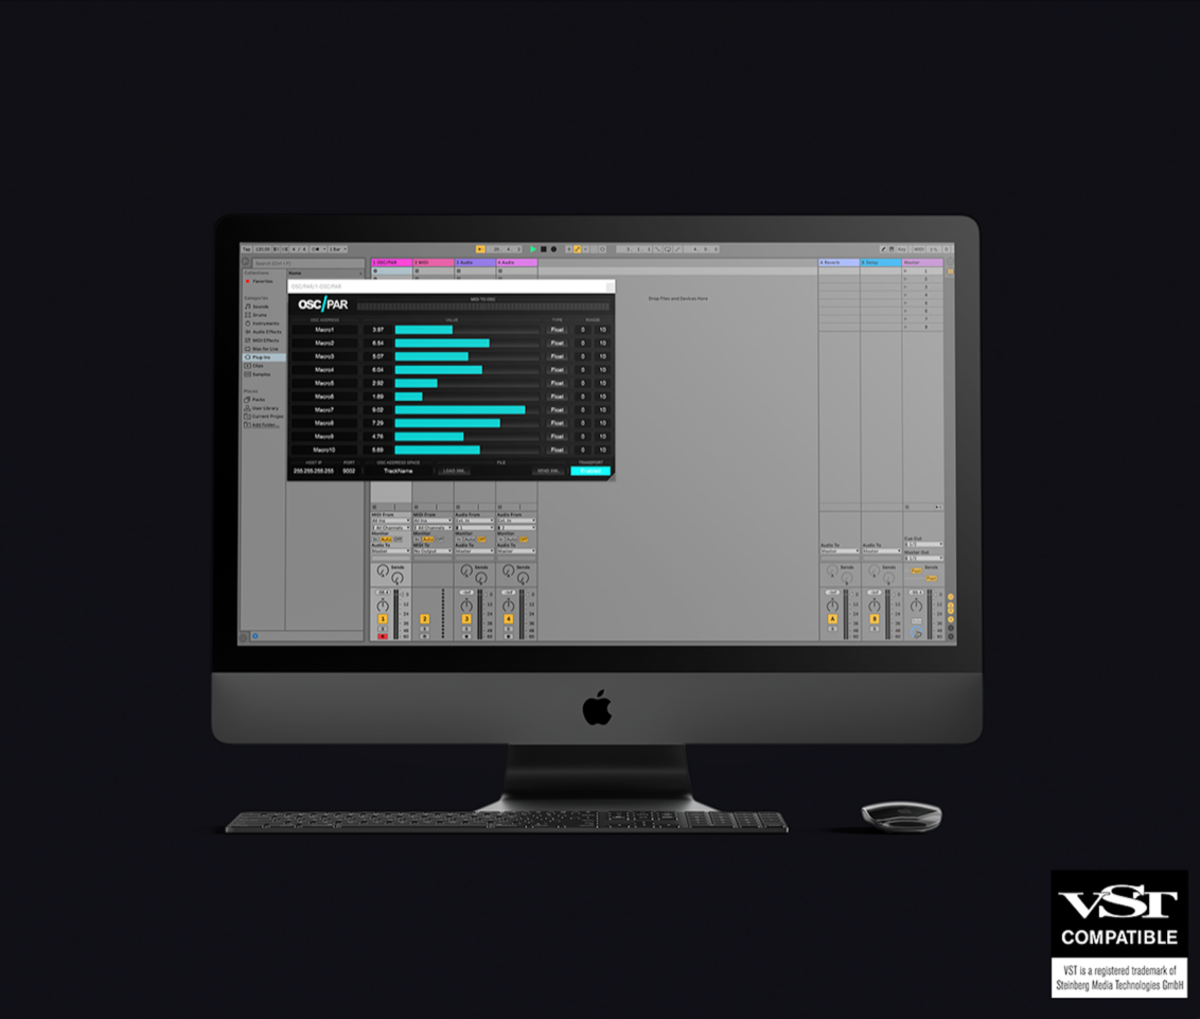 The new OSC/PAR performance tool from deadmau5.